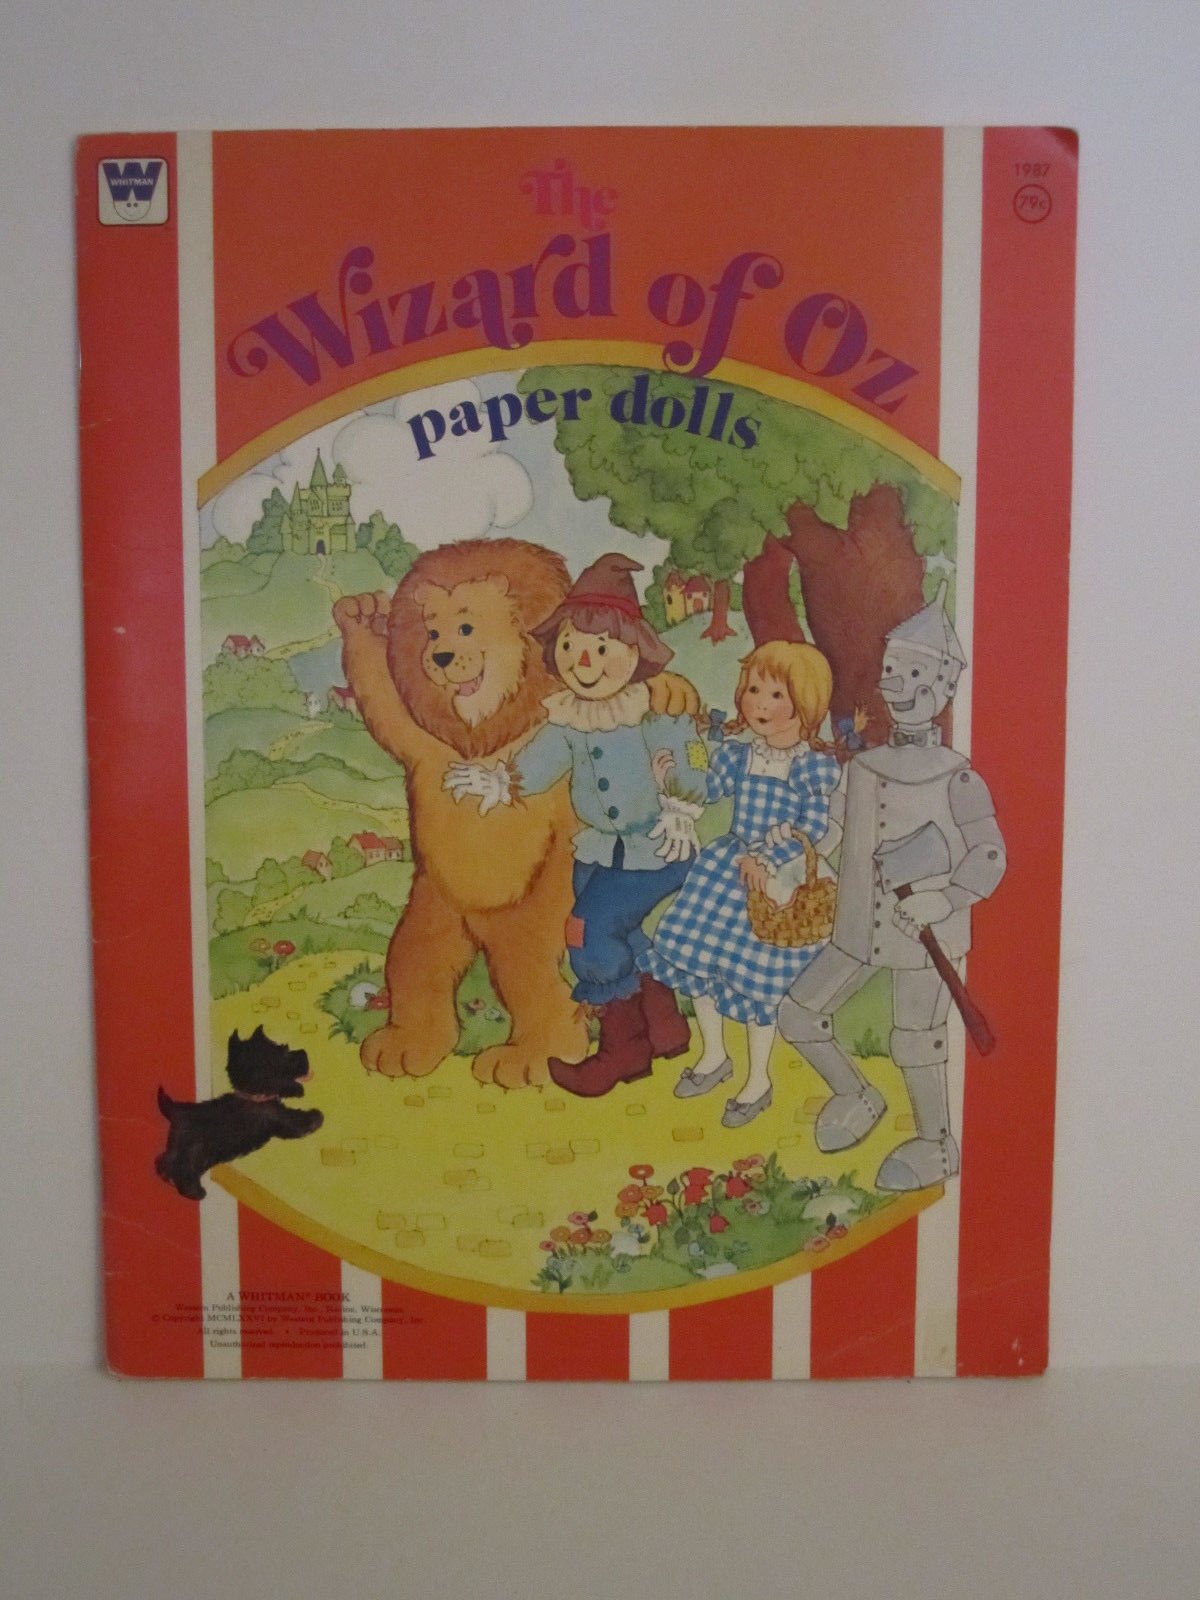 Whitman Wizard of OZ PaperDolls Vintage 1976 Paper Doll #1987